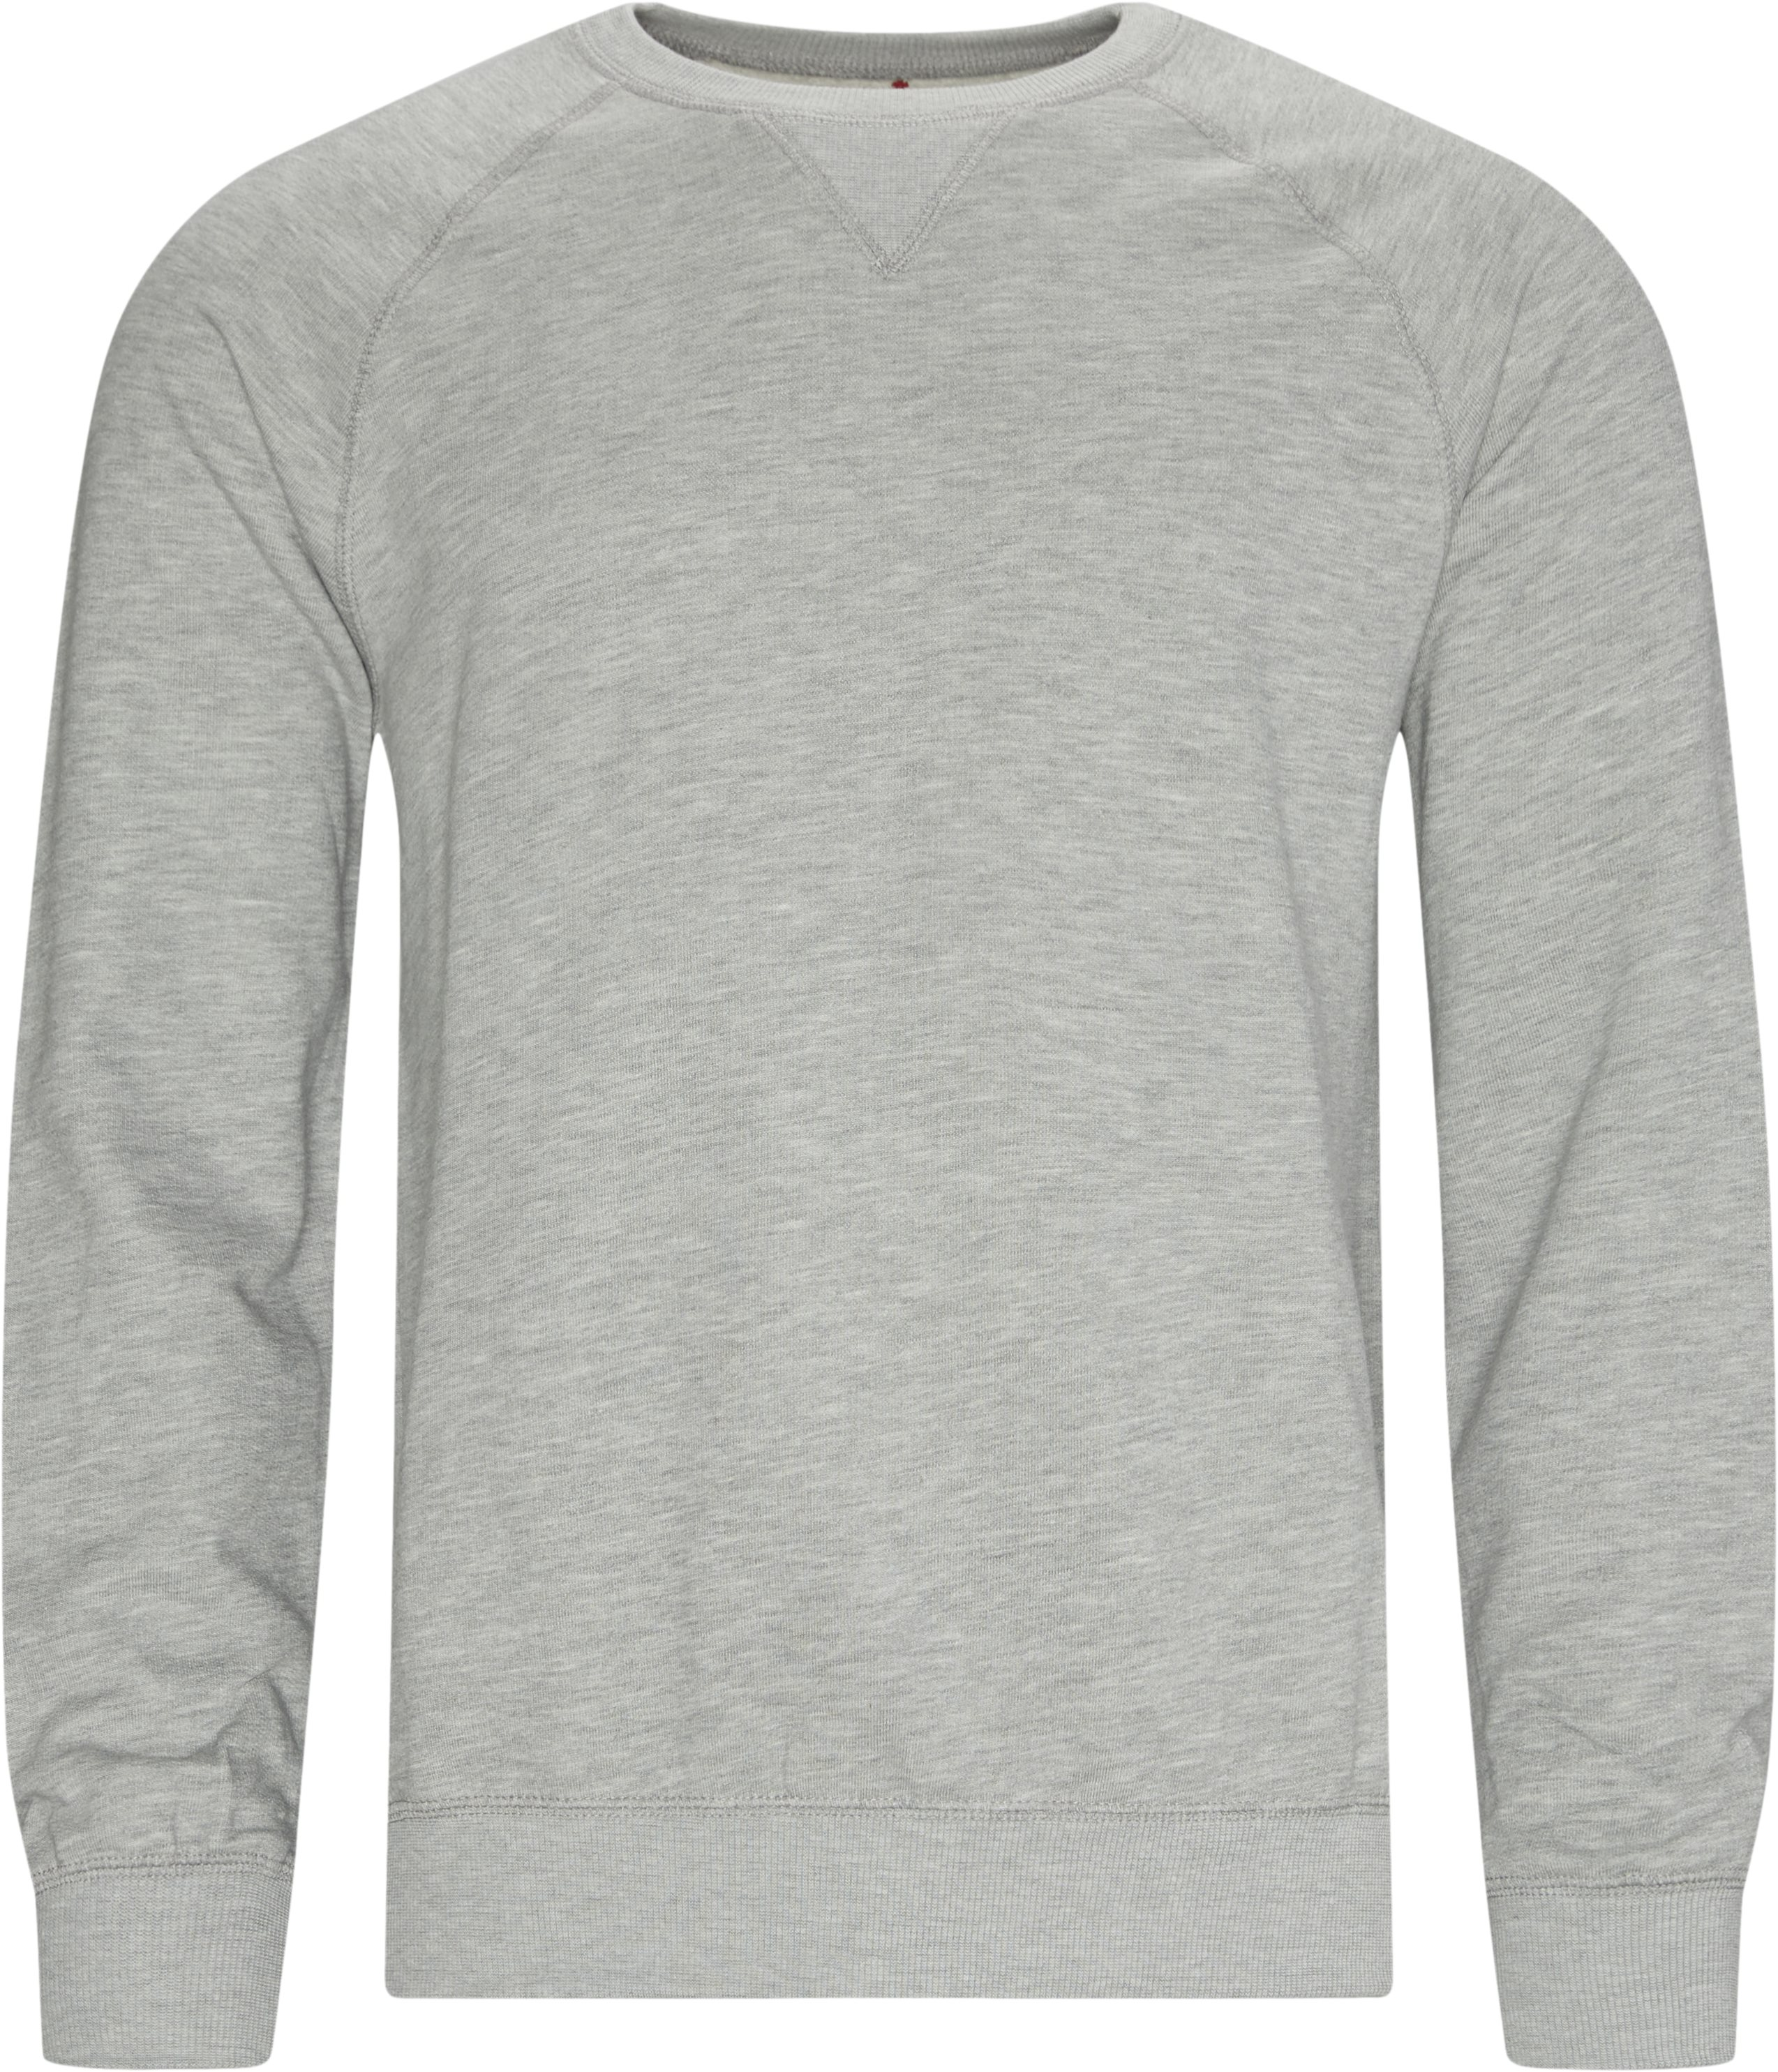 Rouen Crewneck Sweatshirt - Sweatshirts - Regular - Grey